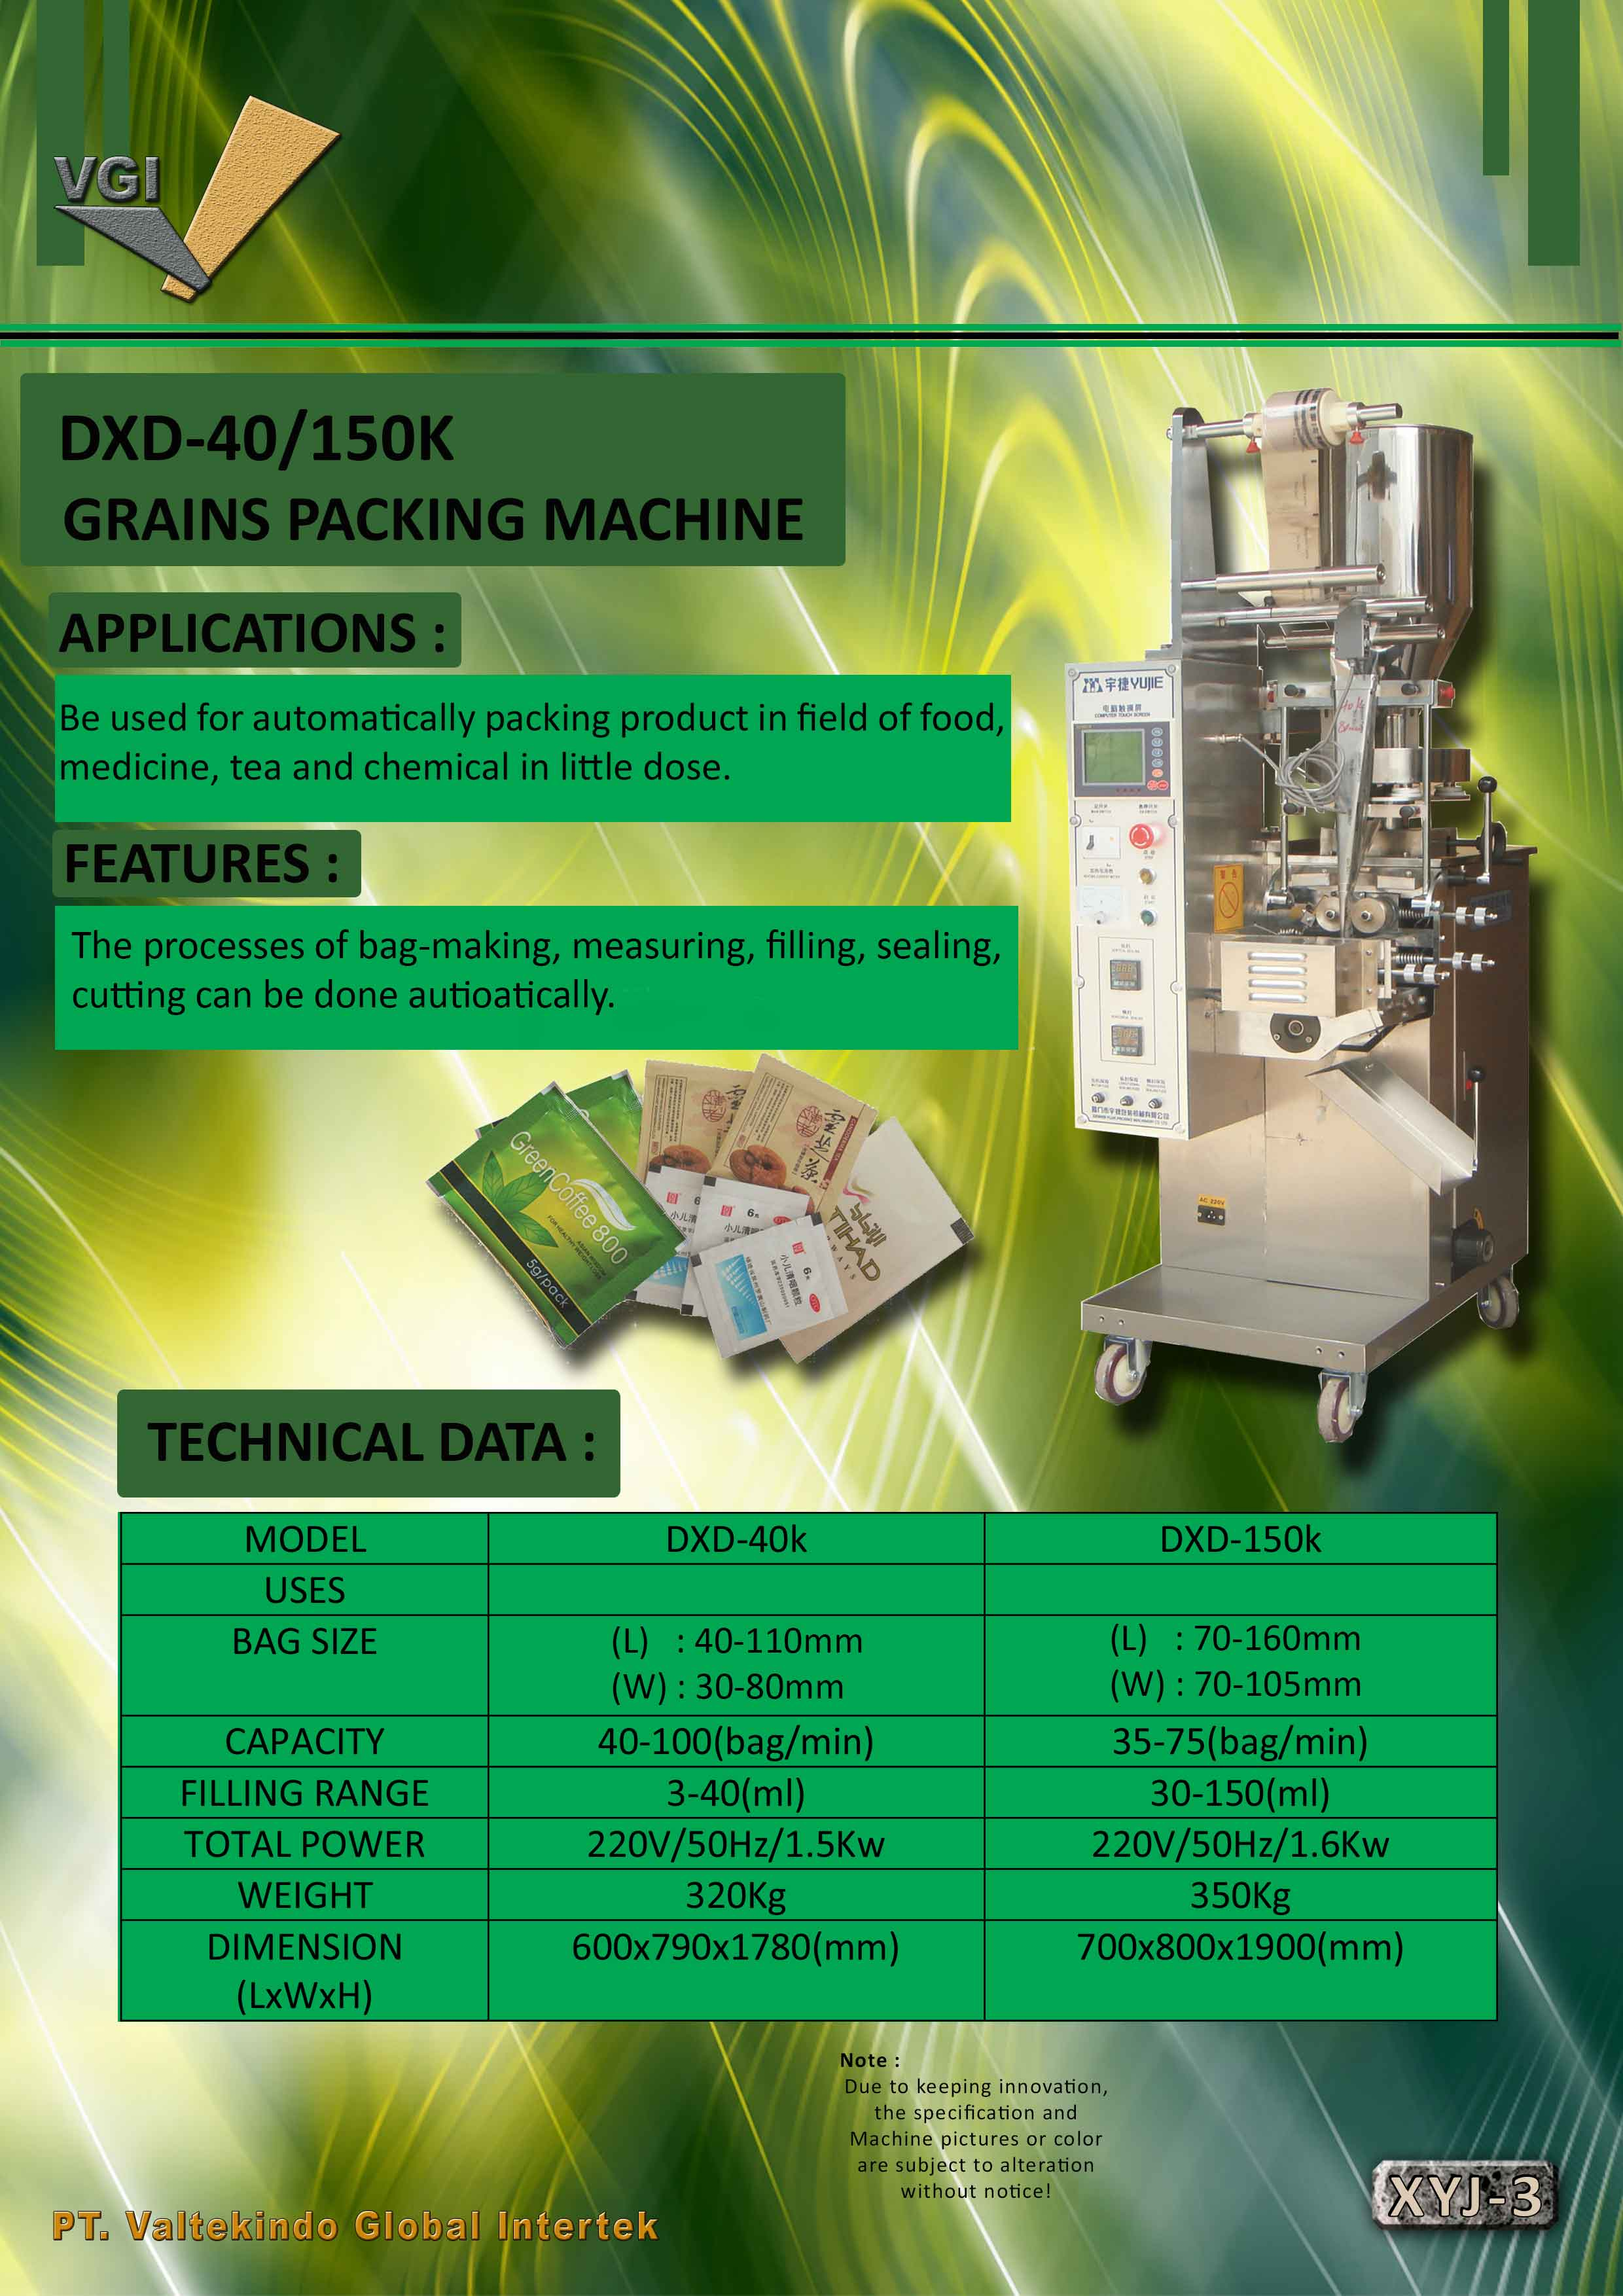 jual mesin Grains Packing Machine Grains Packing Machine